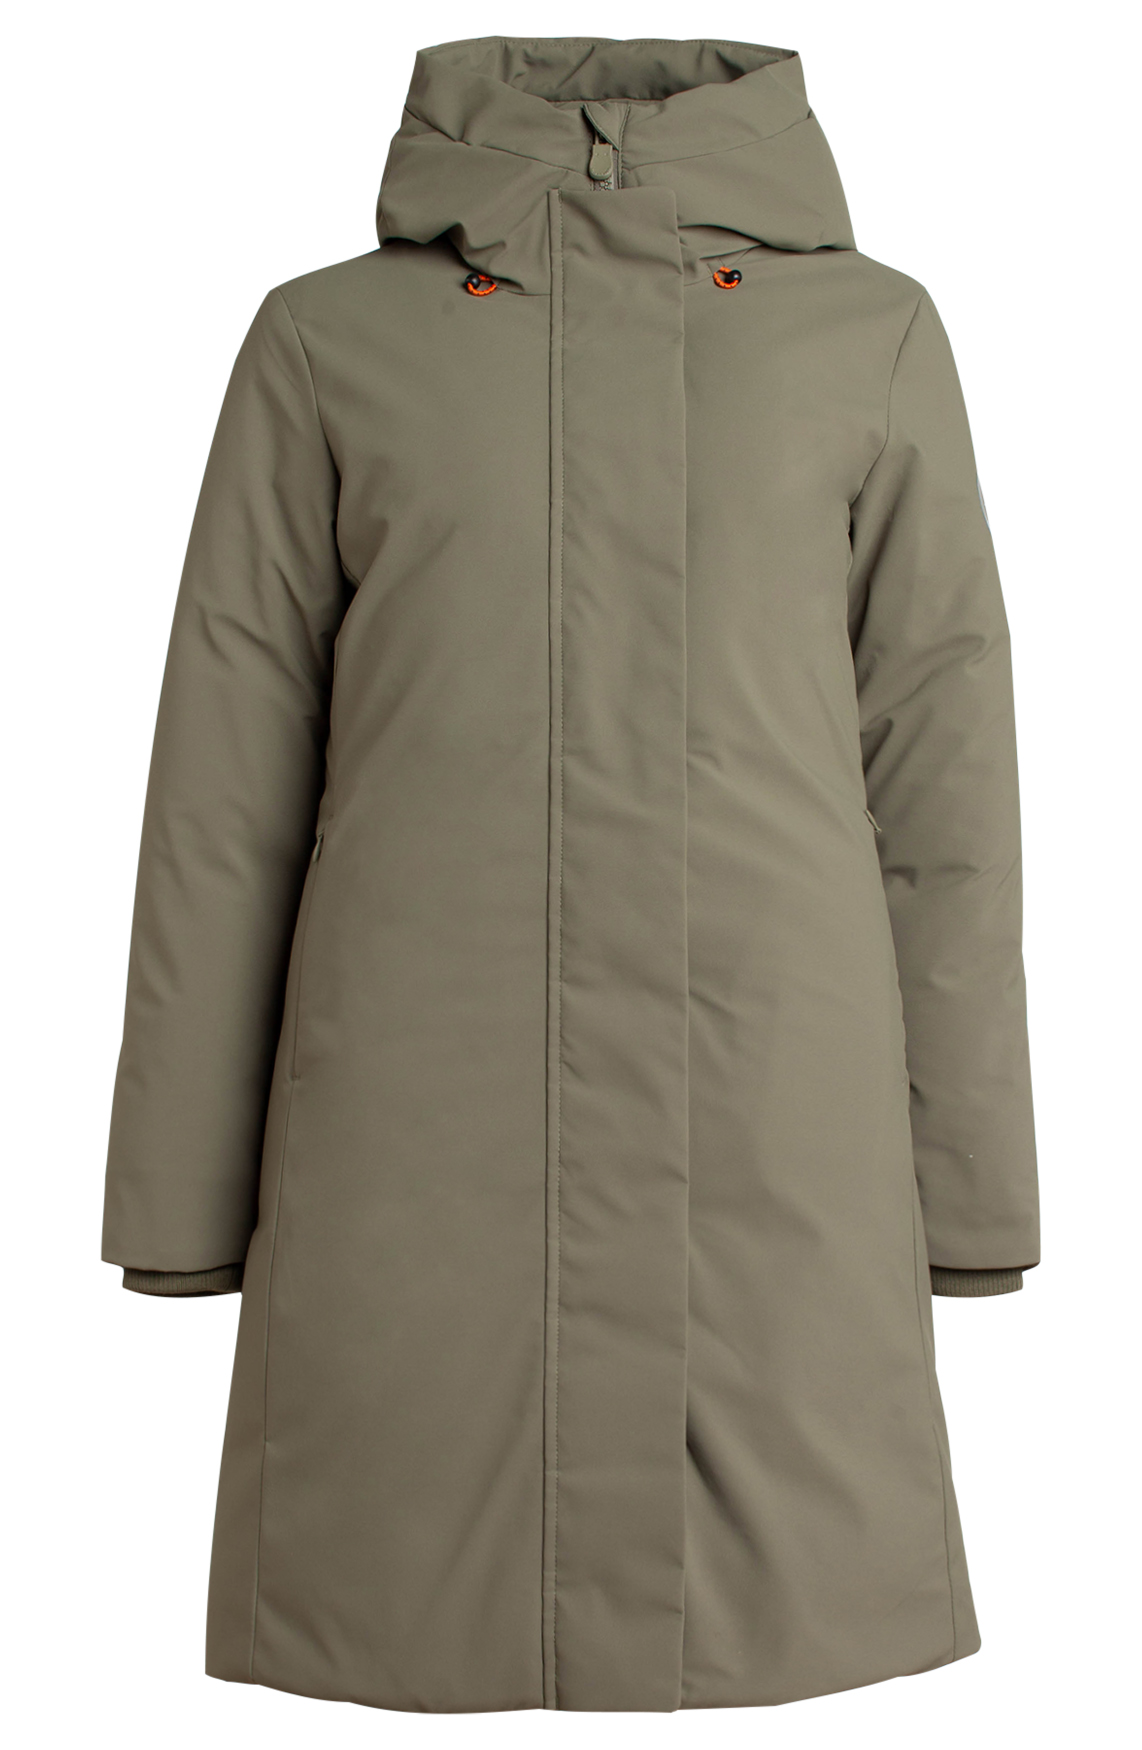 Save the Duck Dames Parka met matte look groen